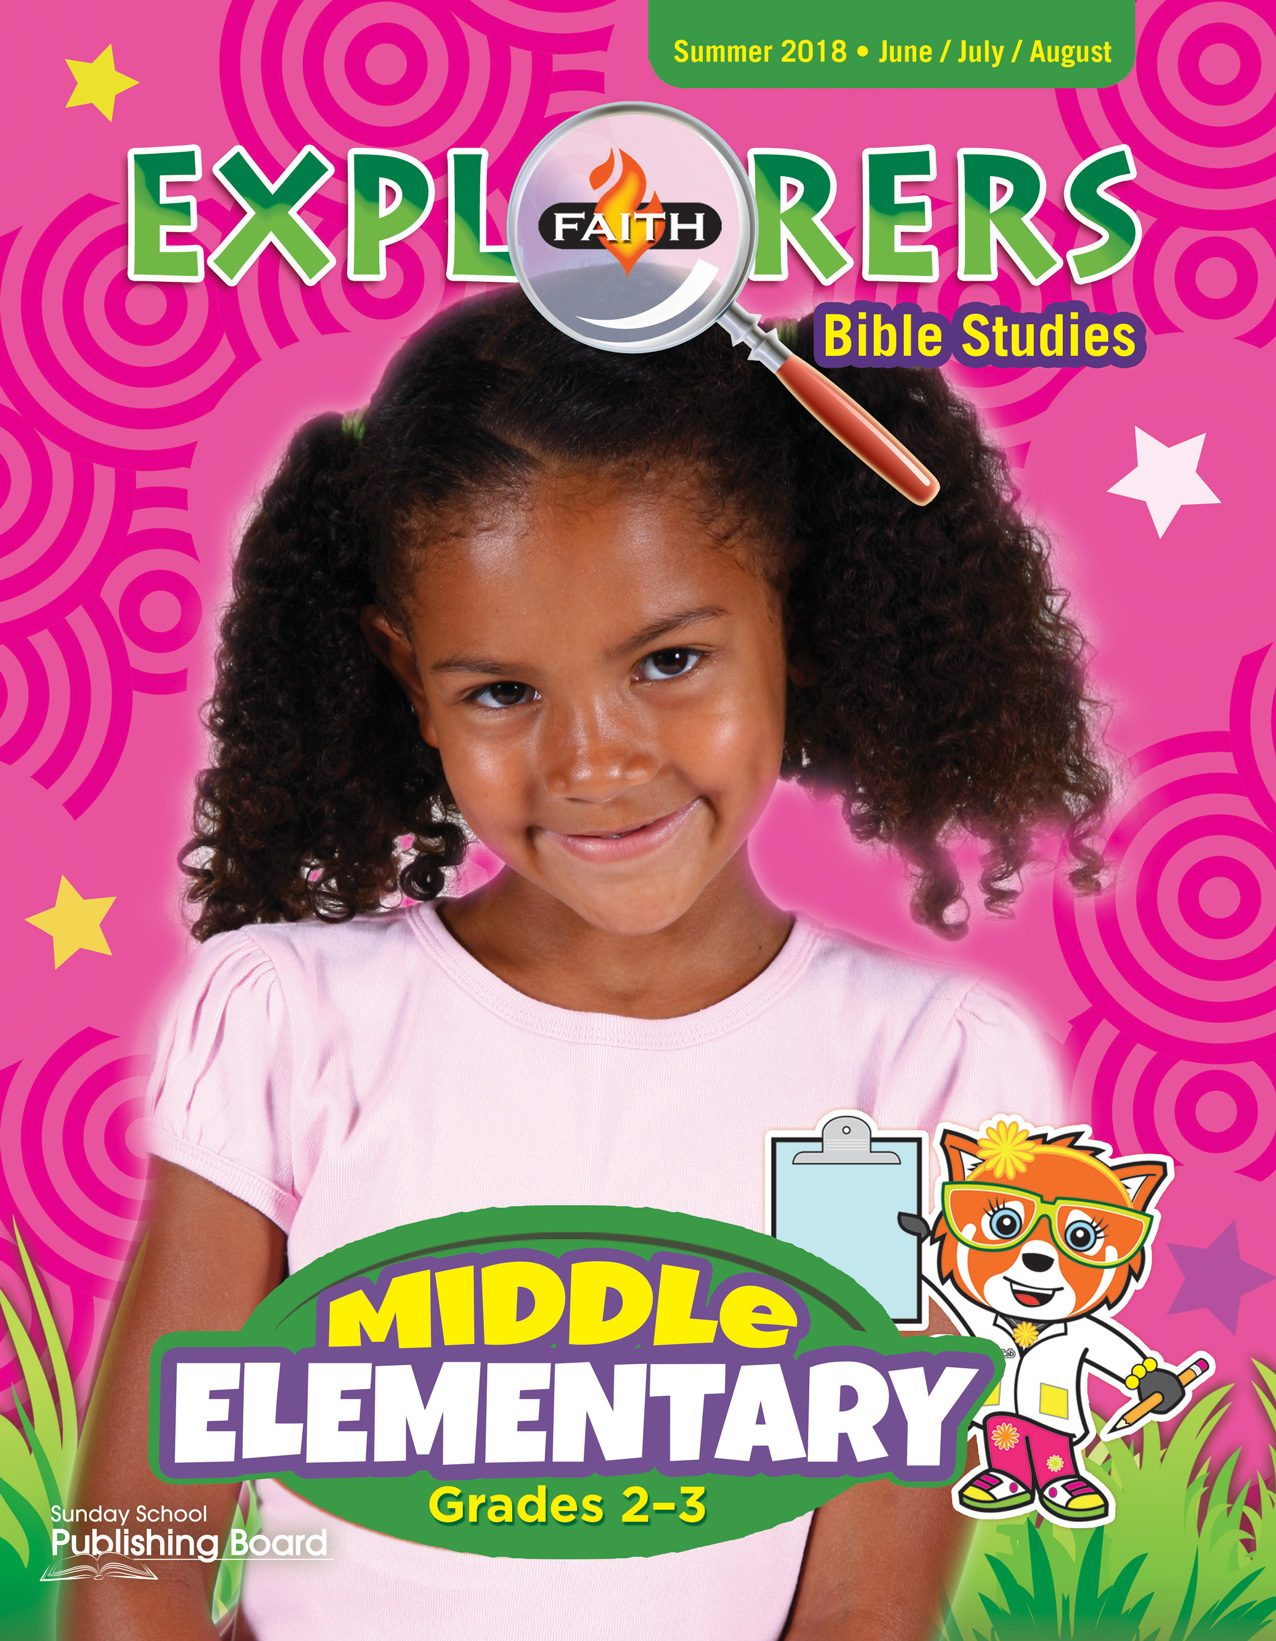 Faith Explorers Bible Studies, Middle Elementary for Grades 2-3 (Summer 2018)-Digital Edition